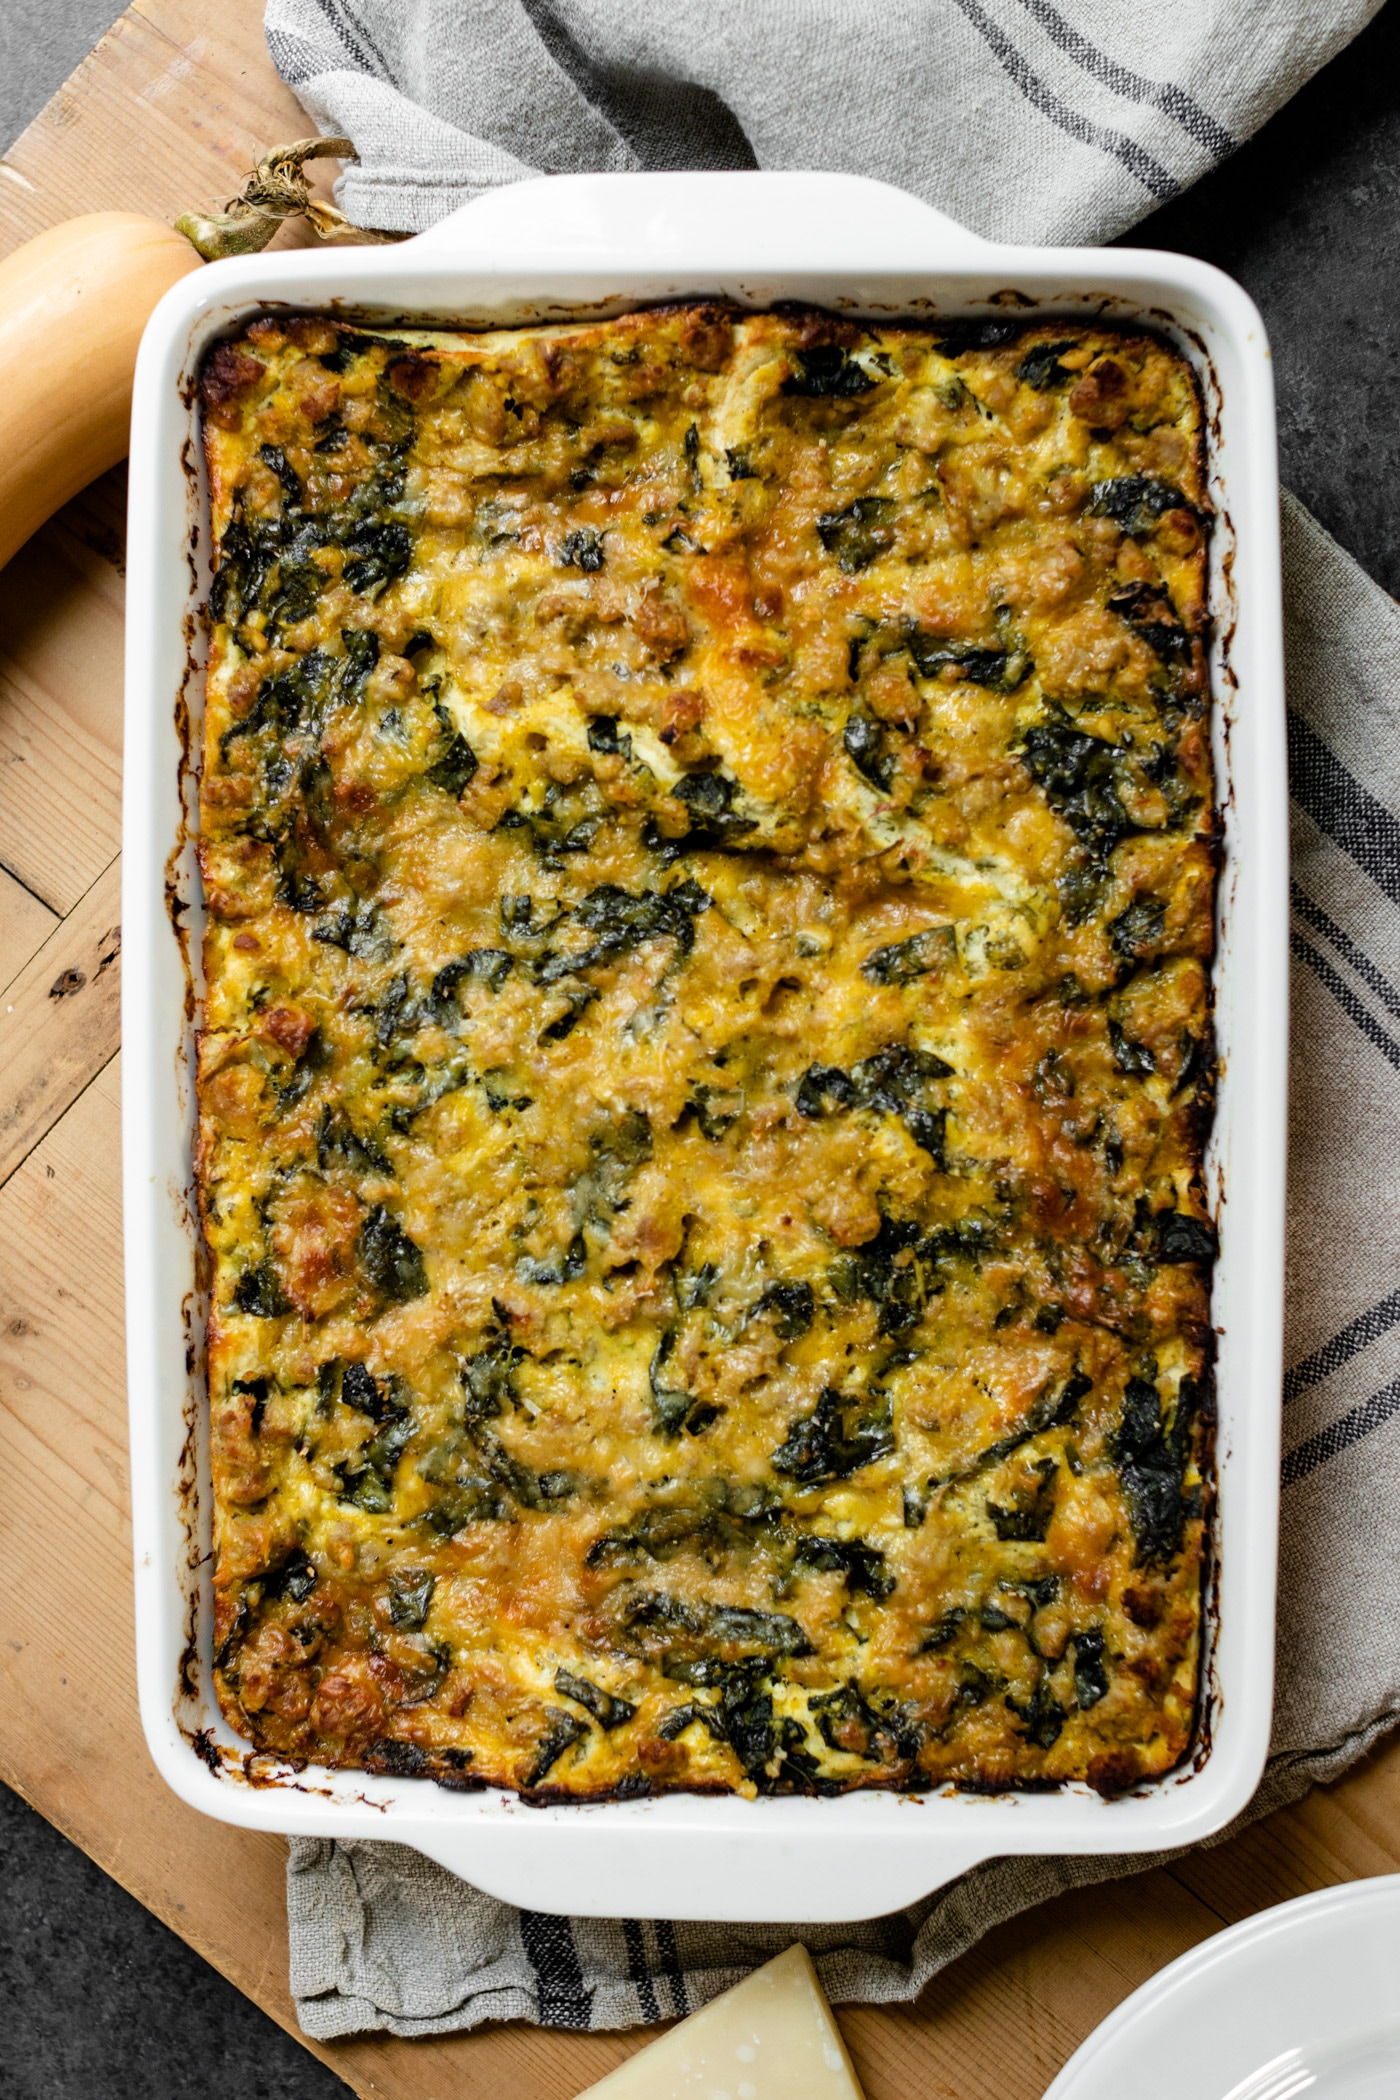 Top down view of squash kale lasagna in white baking dish sitting on wood board with Parmesan cheese, squash and towel underneath all on gray slate surface